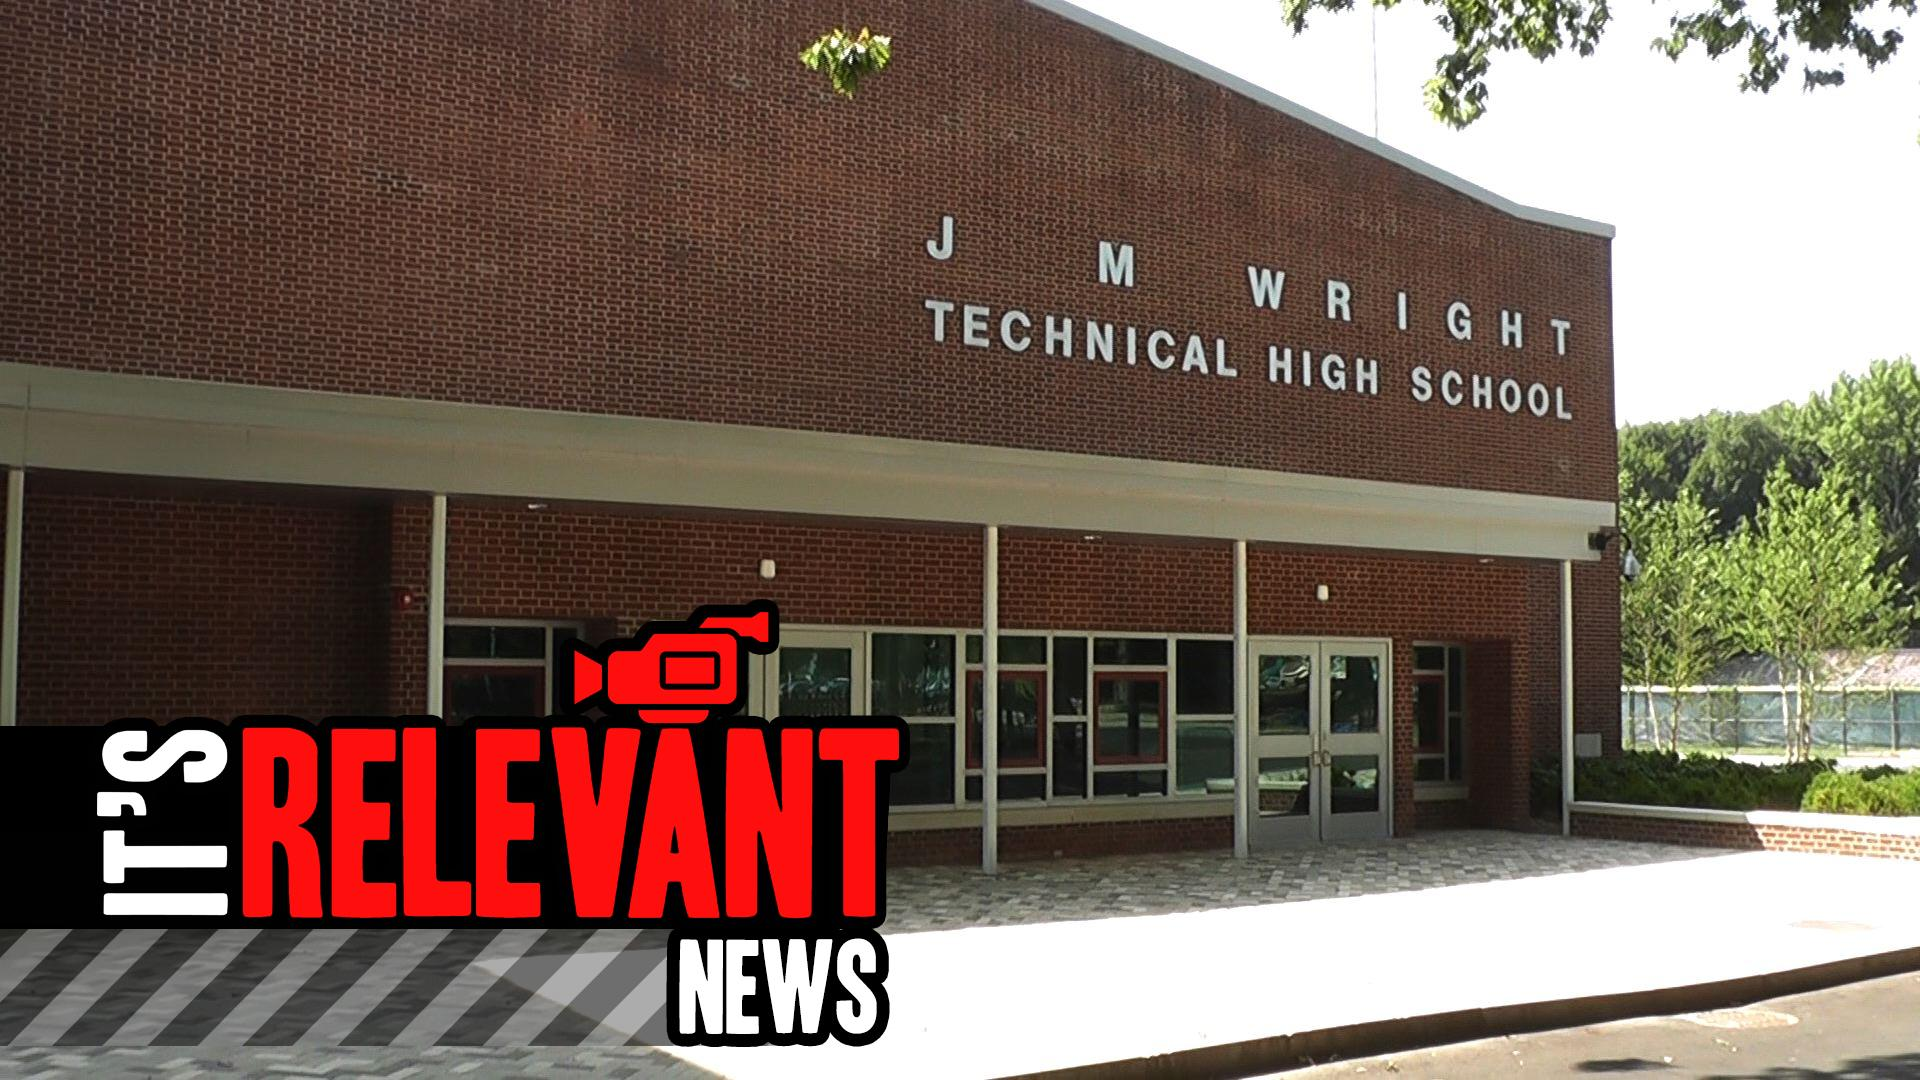 Jm Wright Technical High School Officially Reopens. Task Management Programs Tucson Storage Units. Virginia Culinary Institute Therapy For Copd. Best Pos Software For Retail Store. Clinically Proven Eye Cream Flat Roof Tile. Vacant Home Insurance Allstate. Masters Of Creative Writing Colleges In Ca. Public Health Schools In Chicago. Billy The Exterminator Episodes